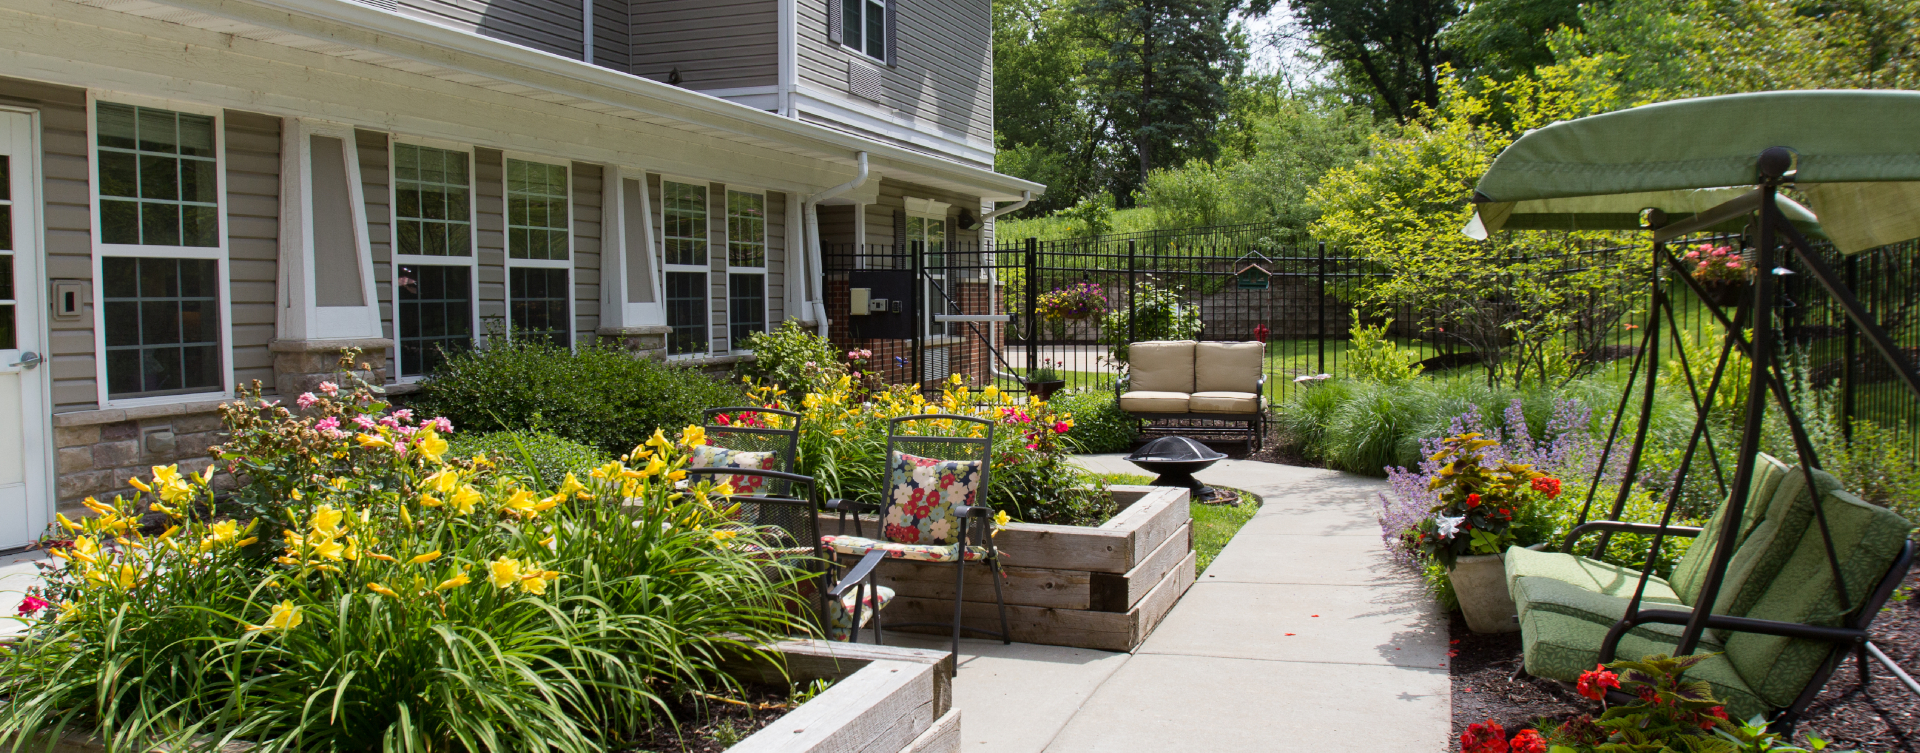 Residents with dementia can enjoy a traveling path, relaxed seating and raised garden beds in the courtyard at Bickford of St. Charles